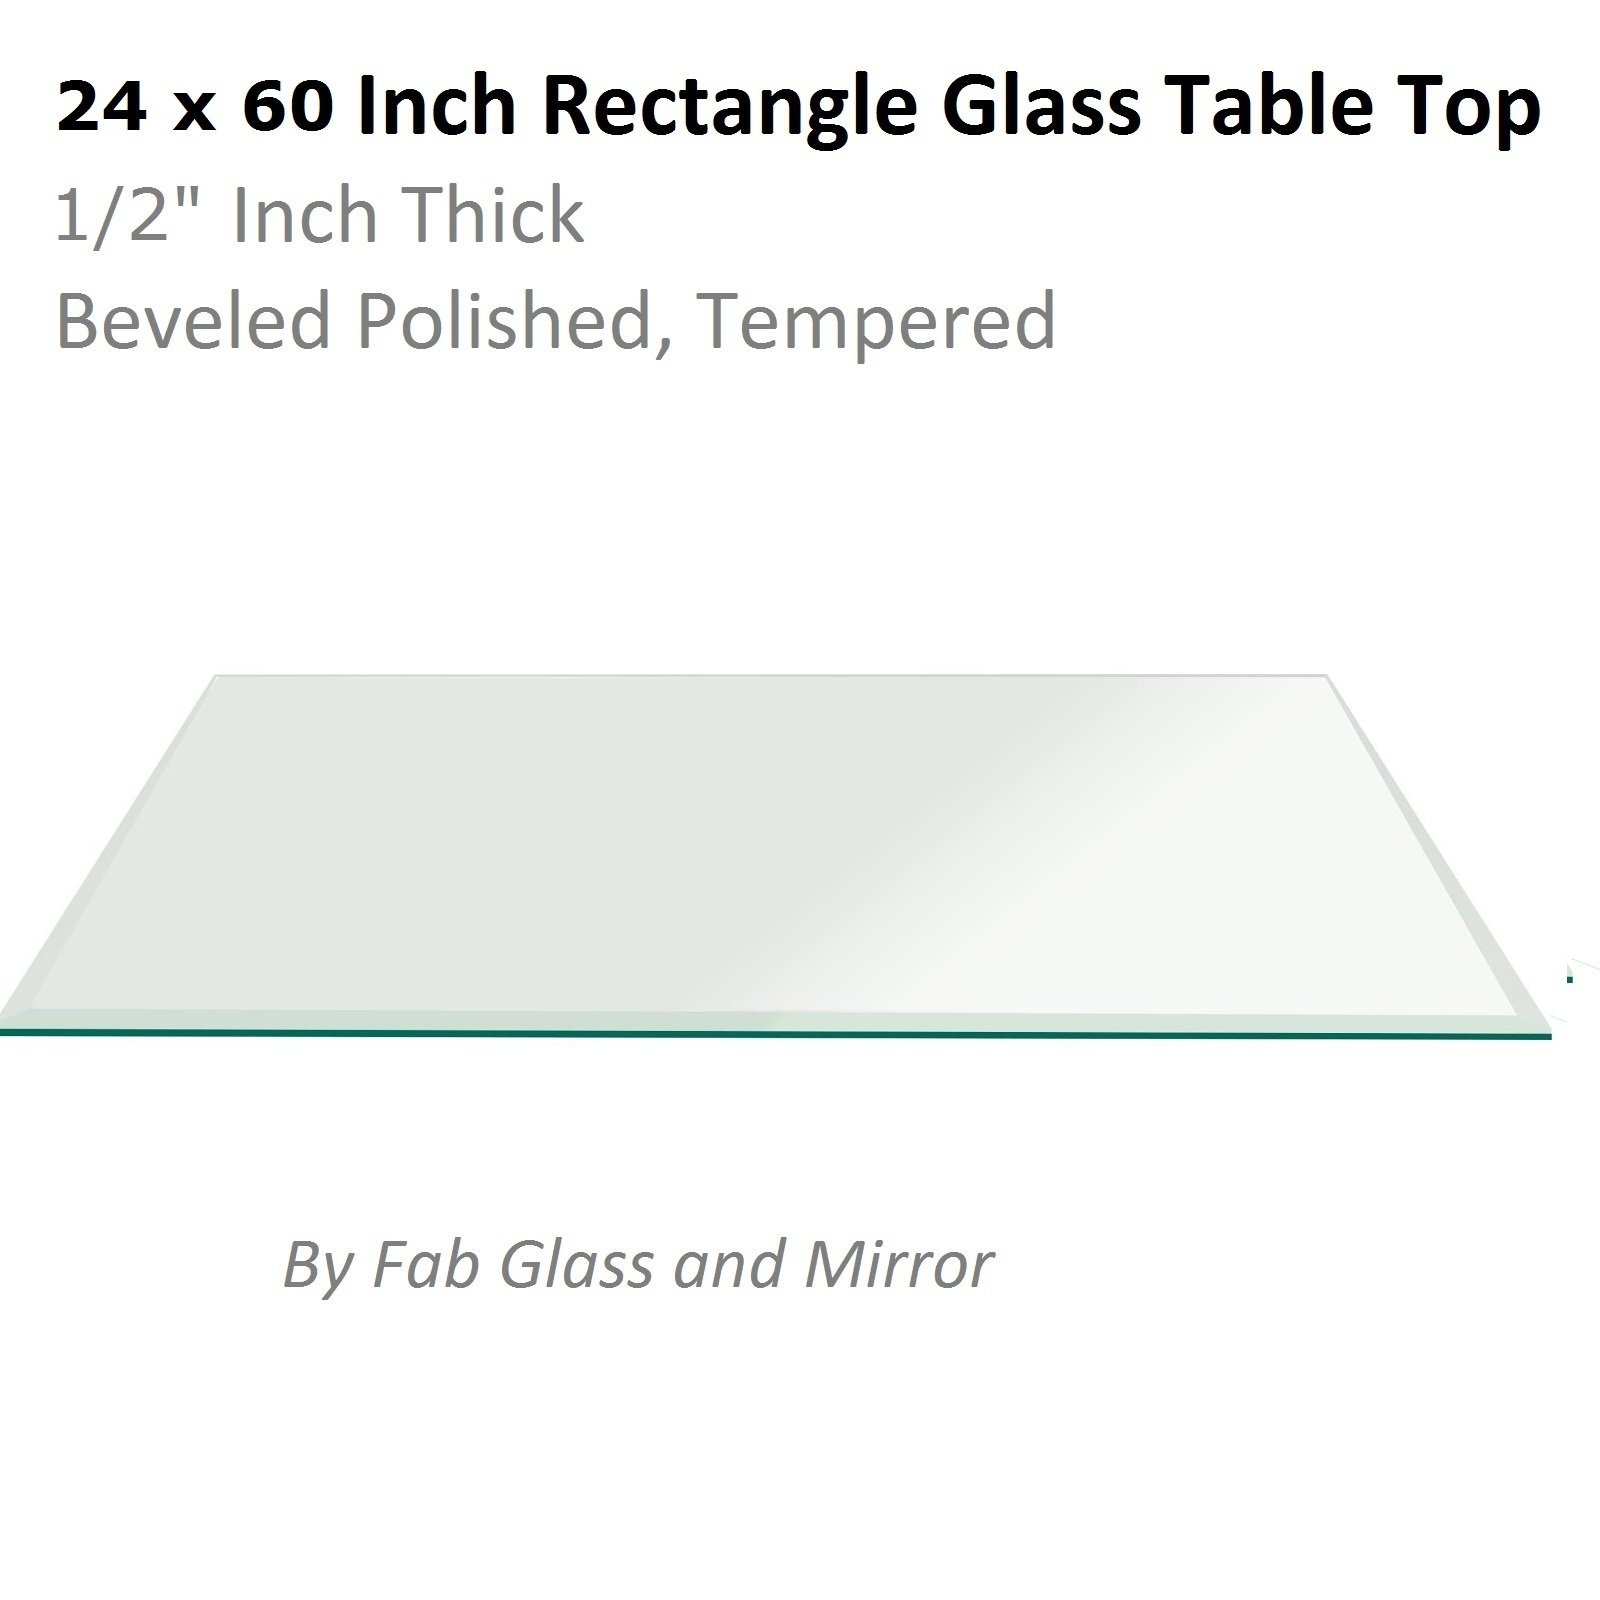 Fab Glass and Mirror T-24x60REC12THBETE Rectangle Glass Table Top 24'' x 60'' Clear